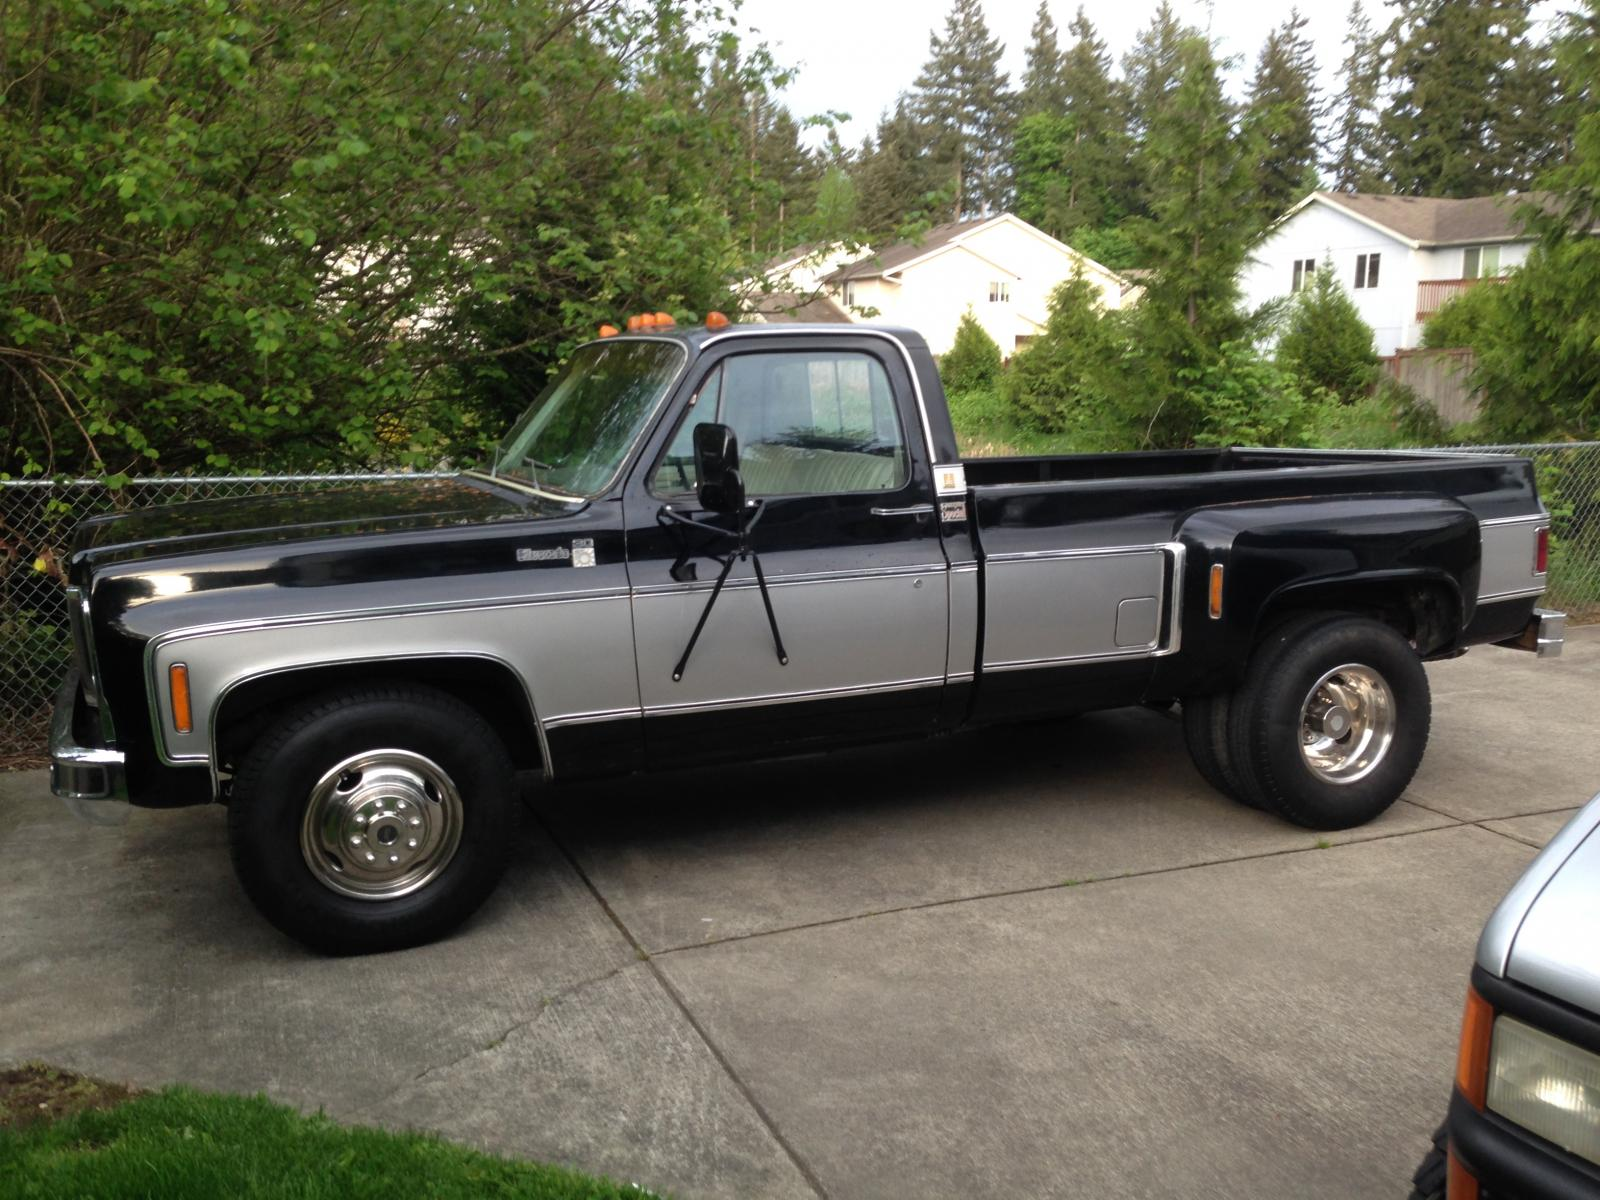 1979 Chevy Single Cab 1 Ton Dually 454/400 Vintage Tow Rig